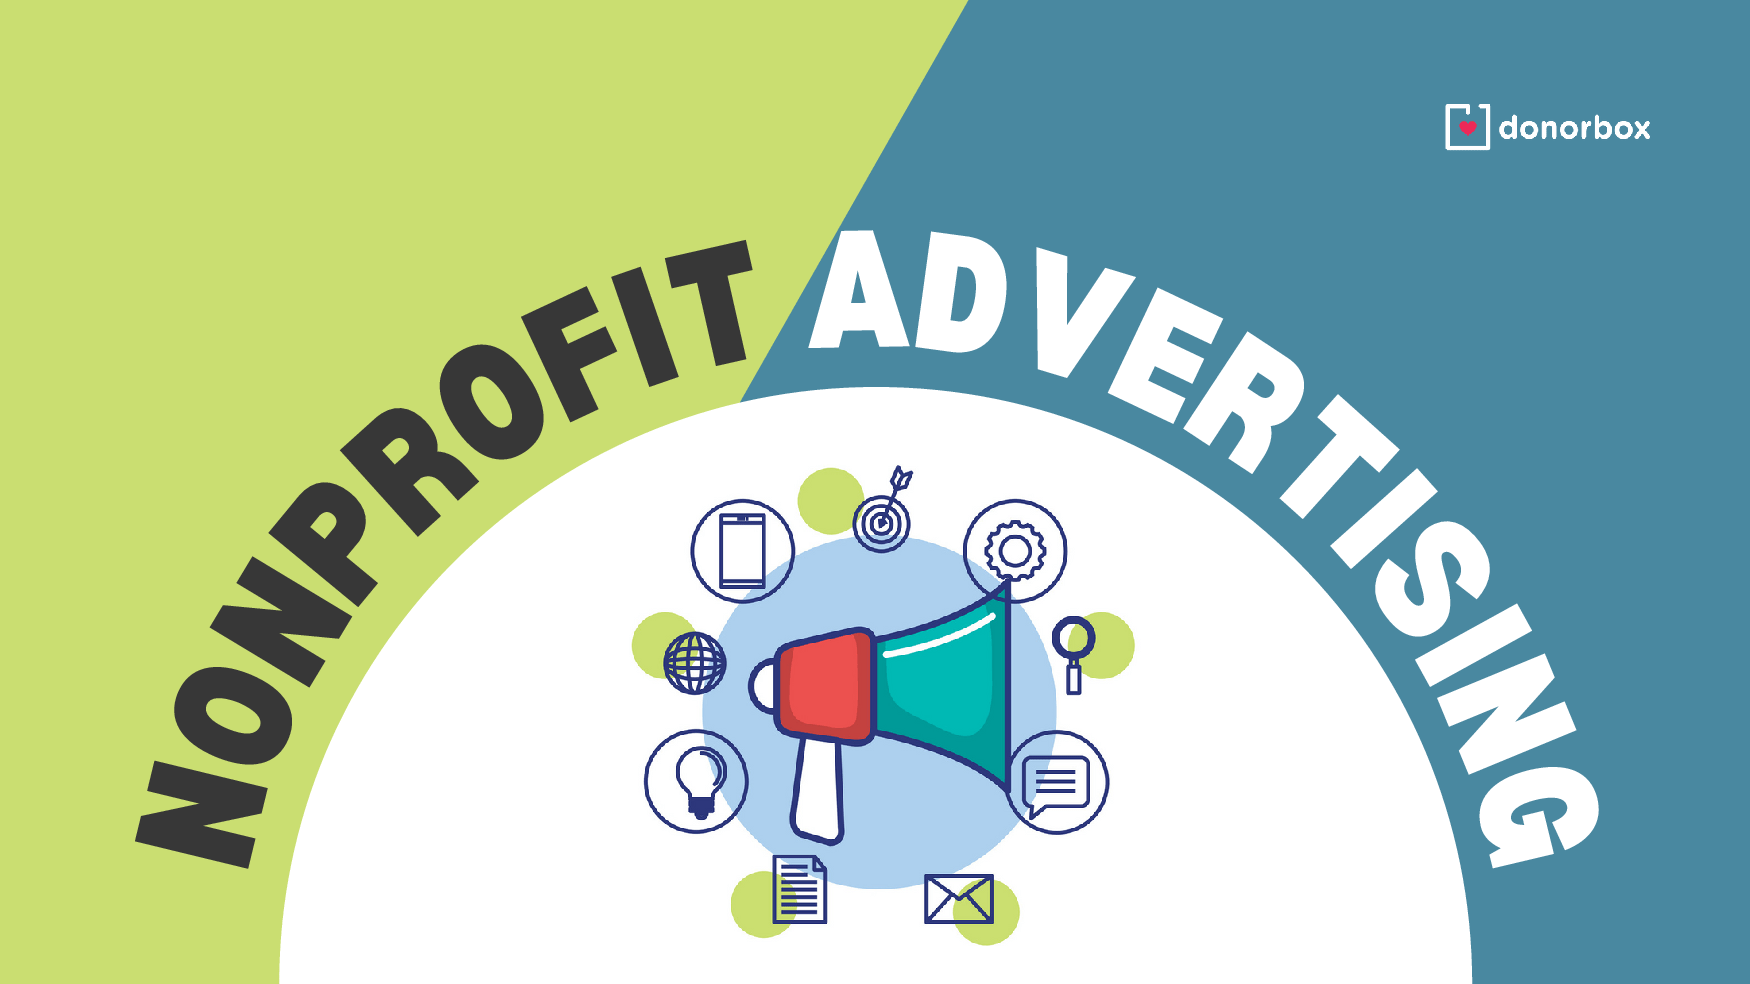 Nonprofit Advertising: Your Best Investment for Consistent Growth